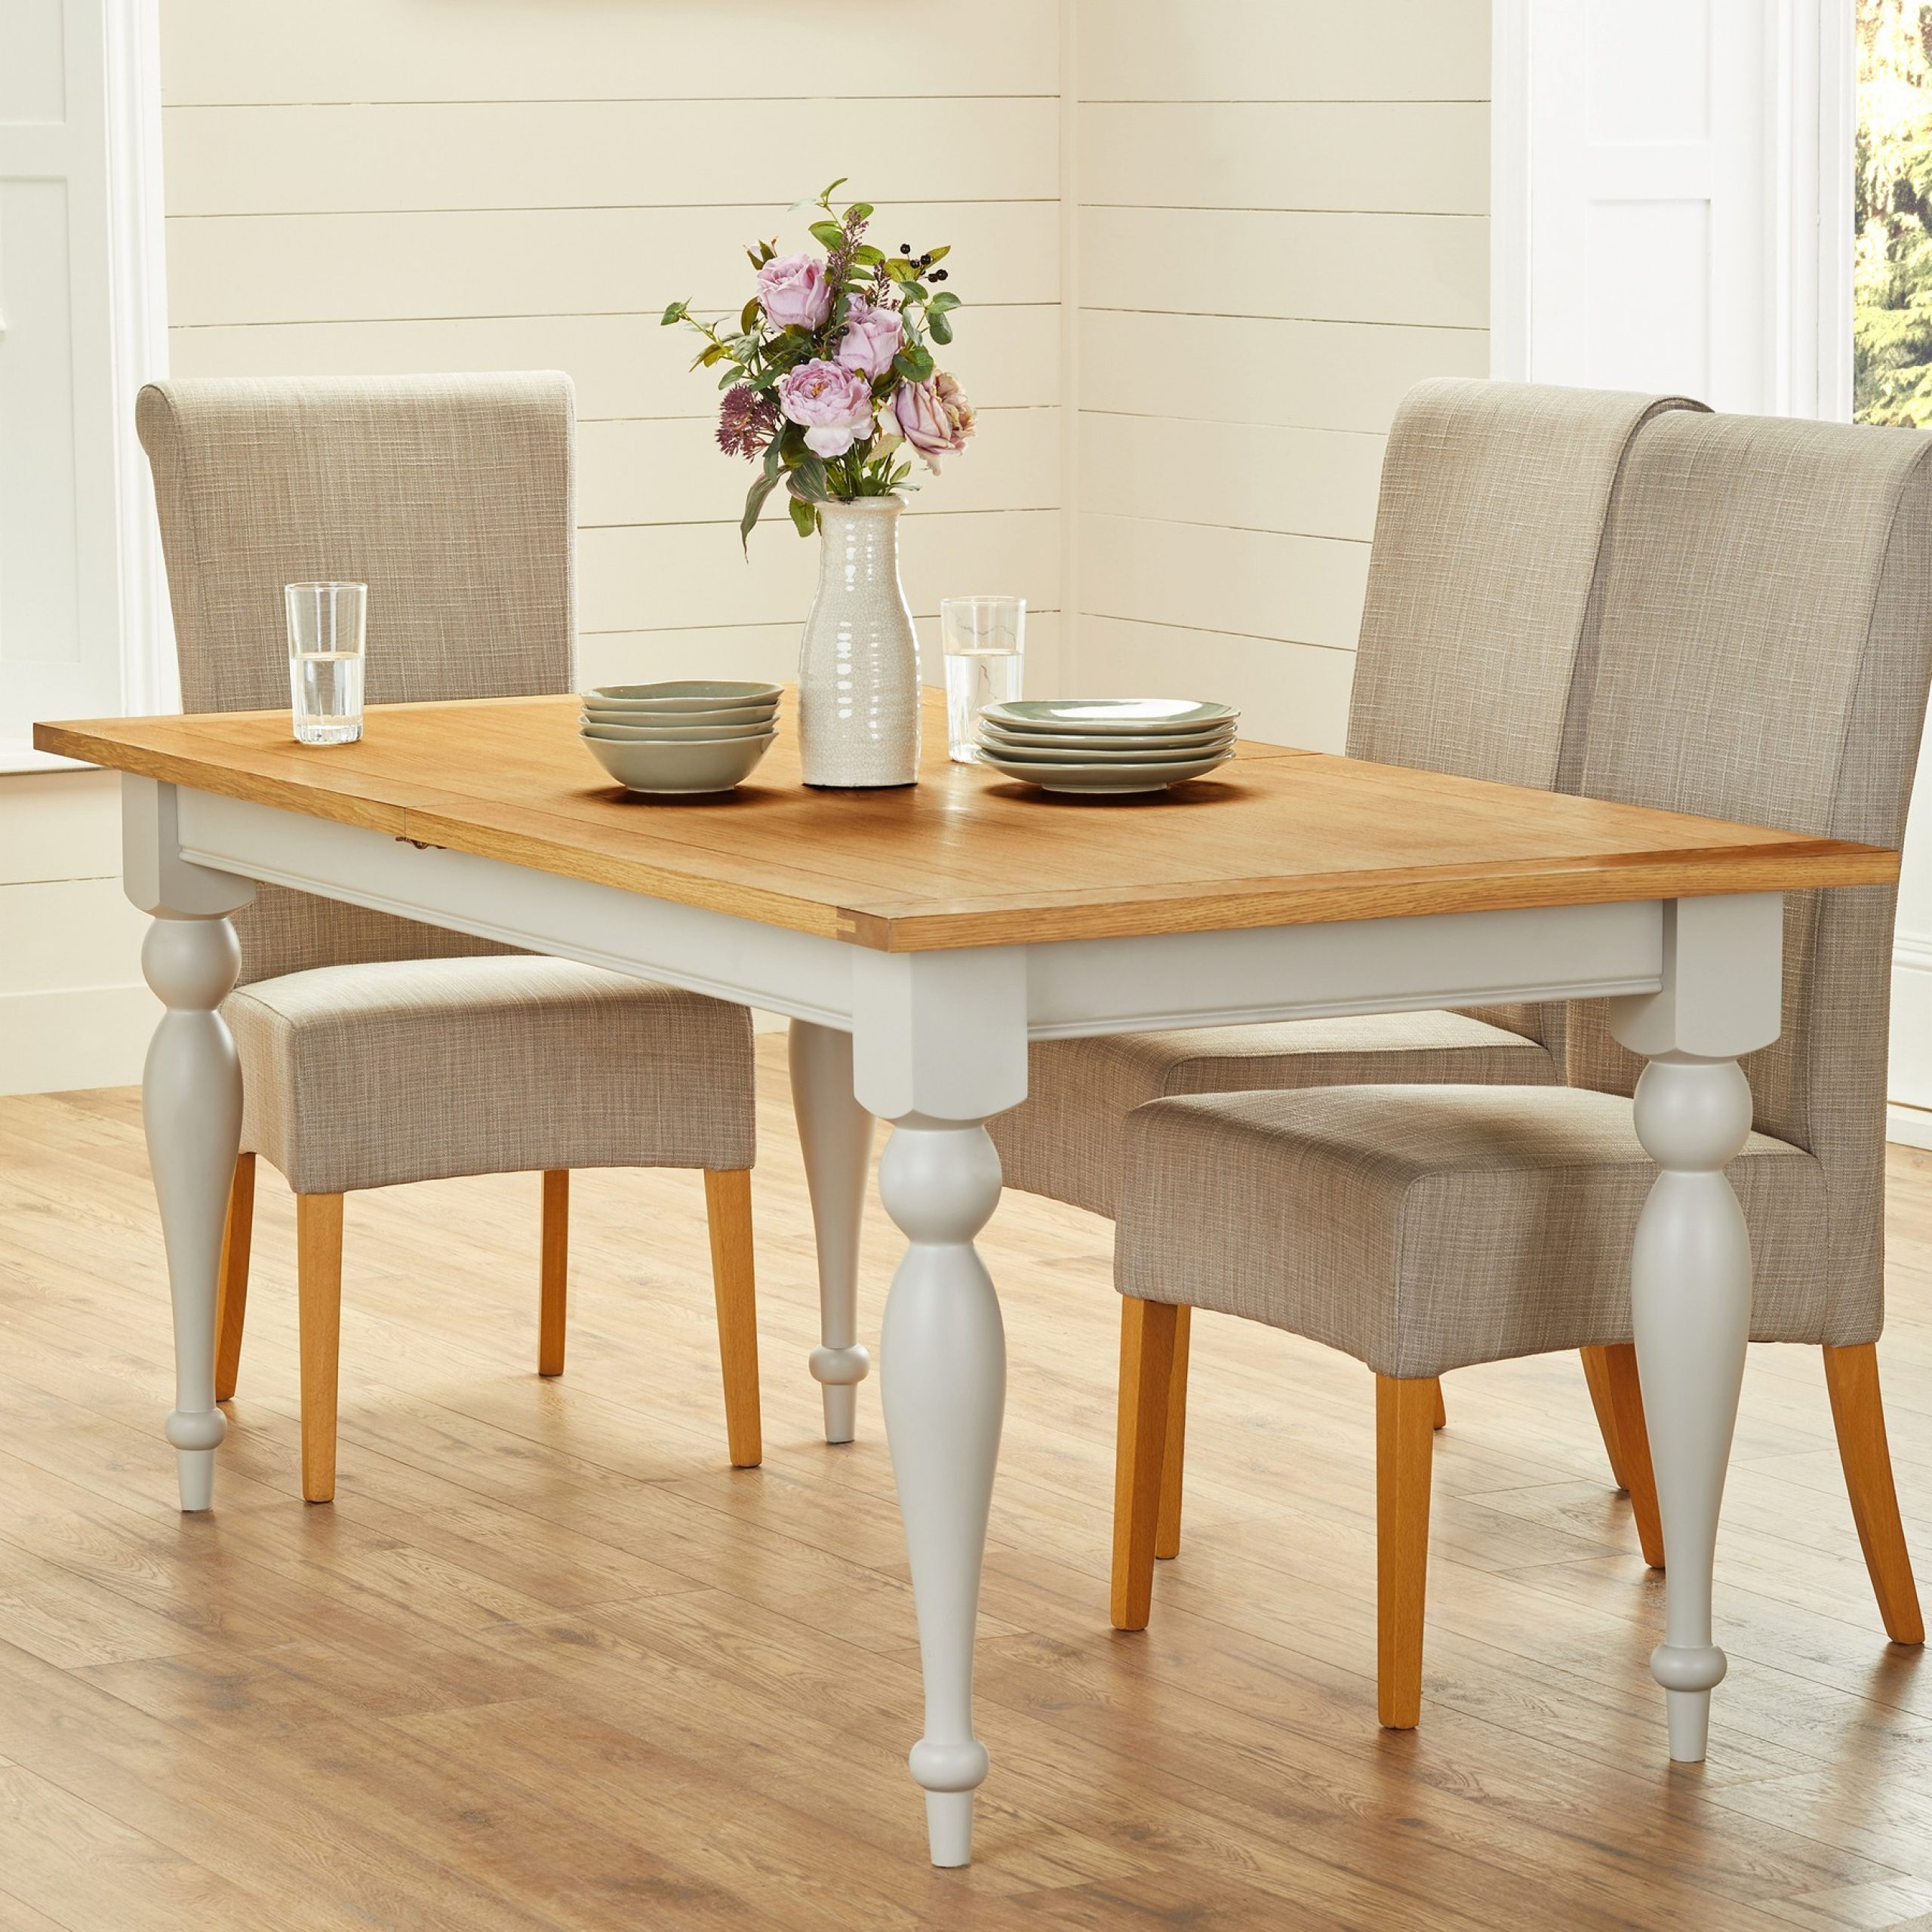 Next Huntingdon Painted Dining Table – Grey | Dining Table Within Most Recent Warner Round Pedestal Dining Tables (View 9 of 25)